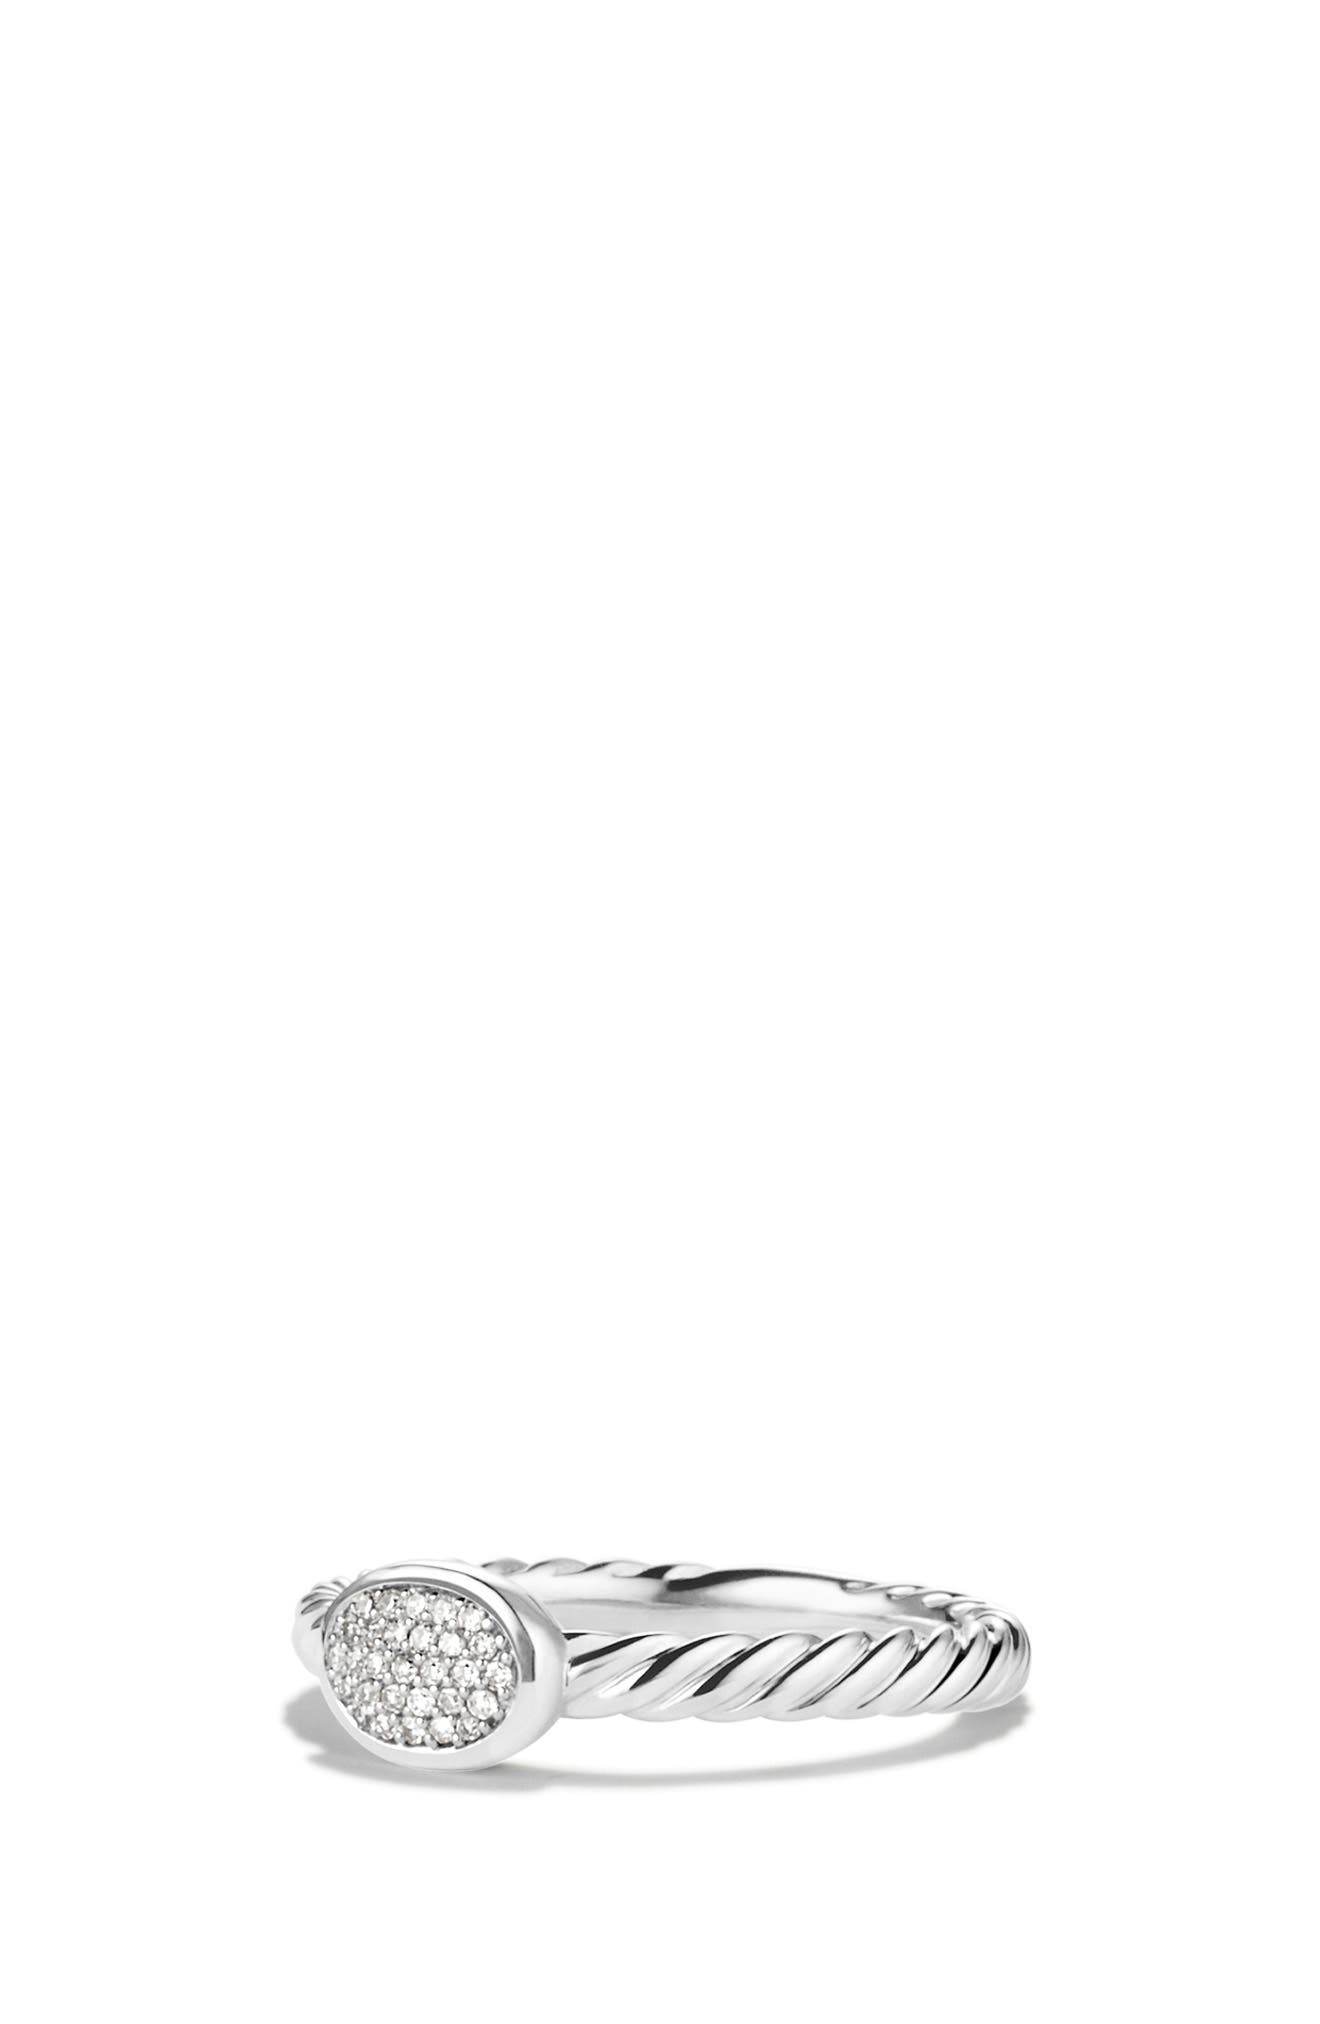 Petite Pavé Oval Ring with Diamonds,                         Main,                         color, Diamond